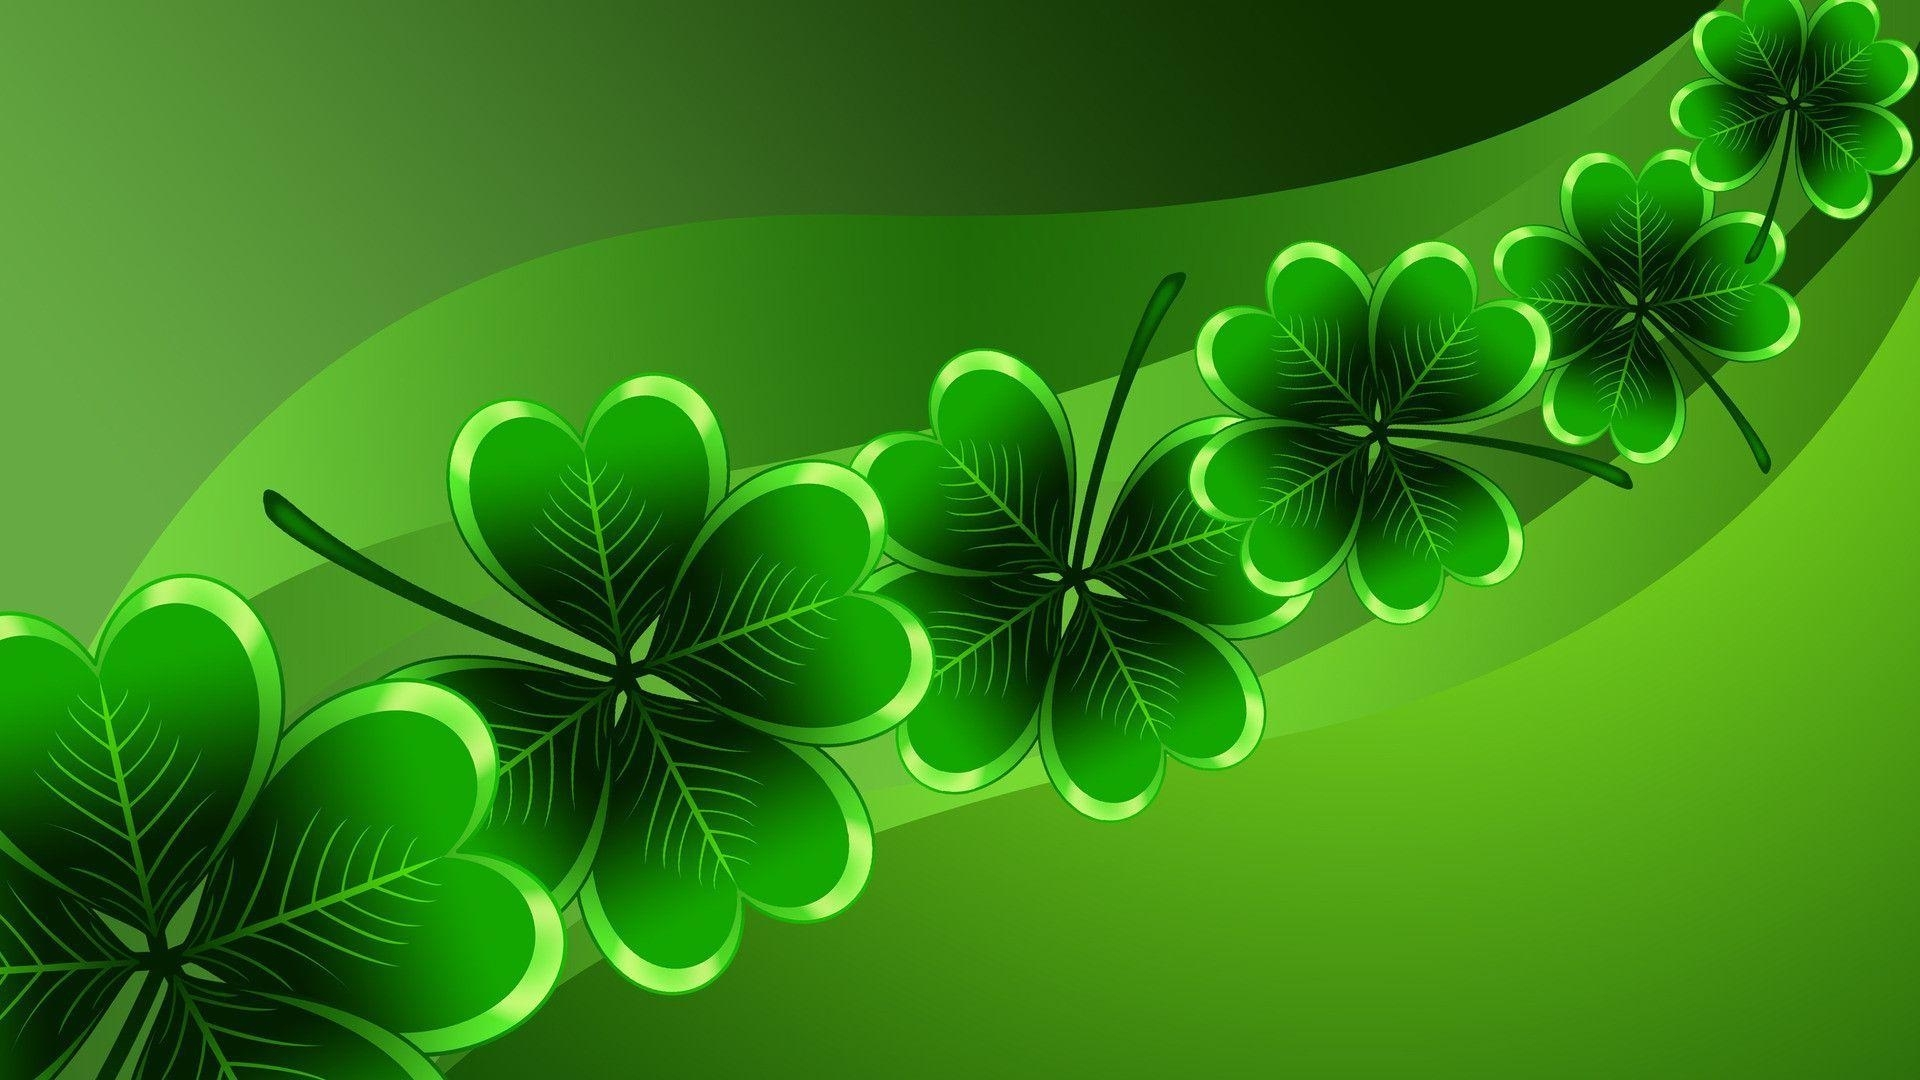 saint patrick day wallpapers - wallpaper cave